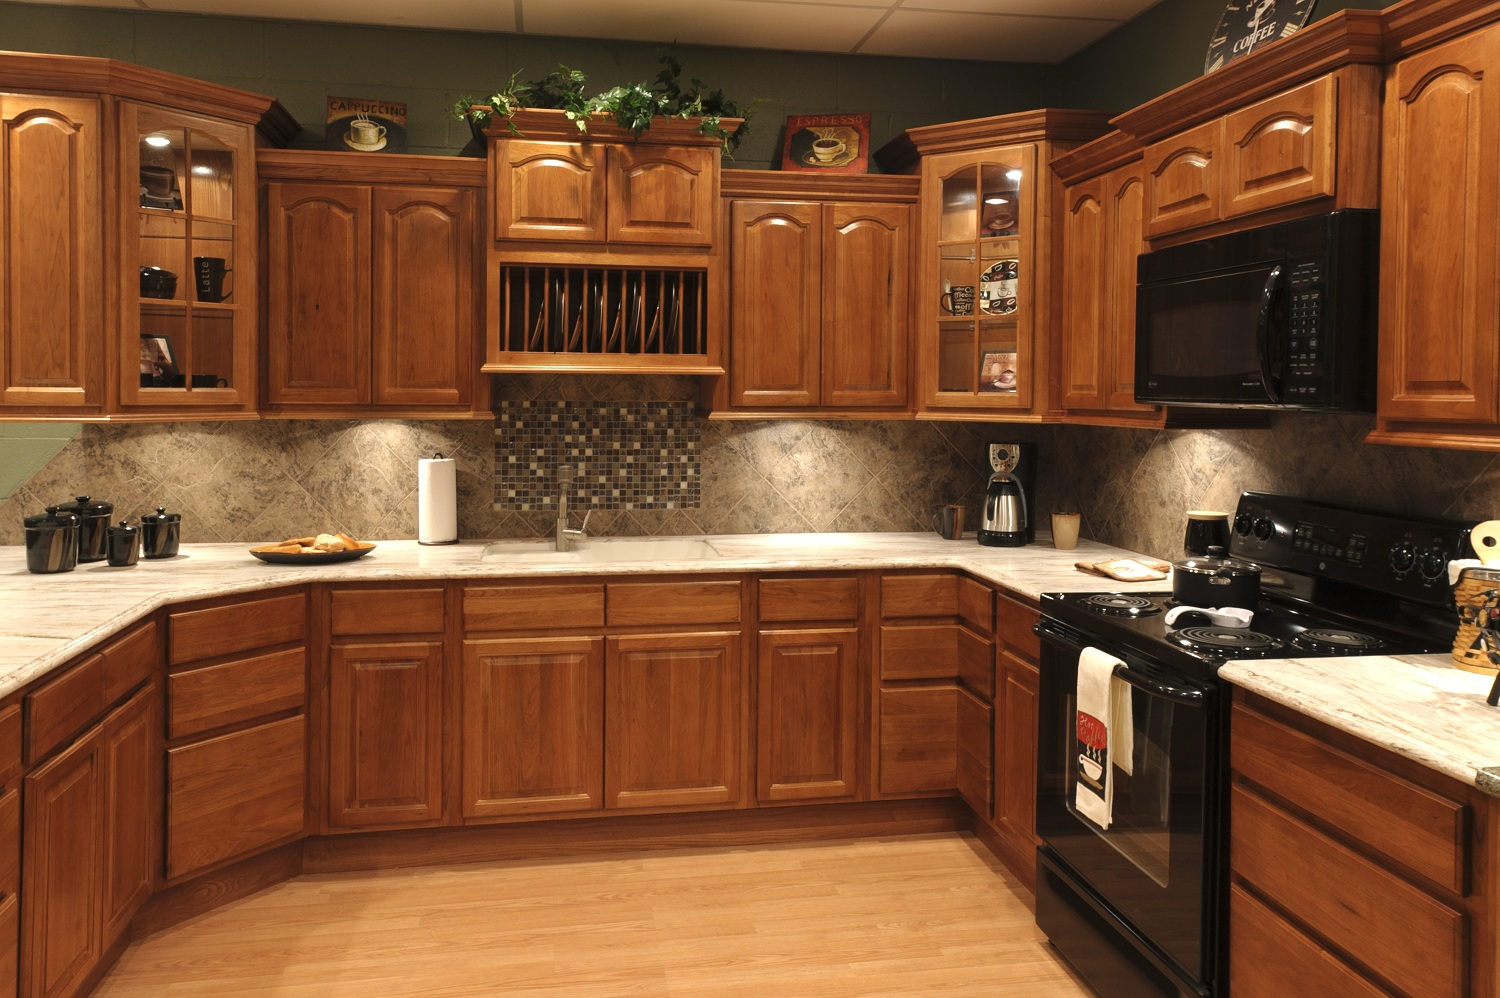 Windy hill hardwoods beautiful jmark kitchen cabinet kitchen tile ideas for hickory cabinets